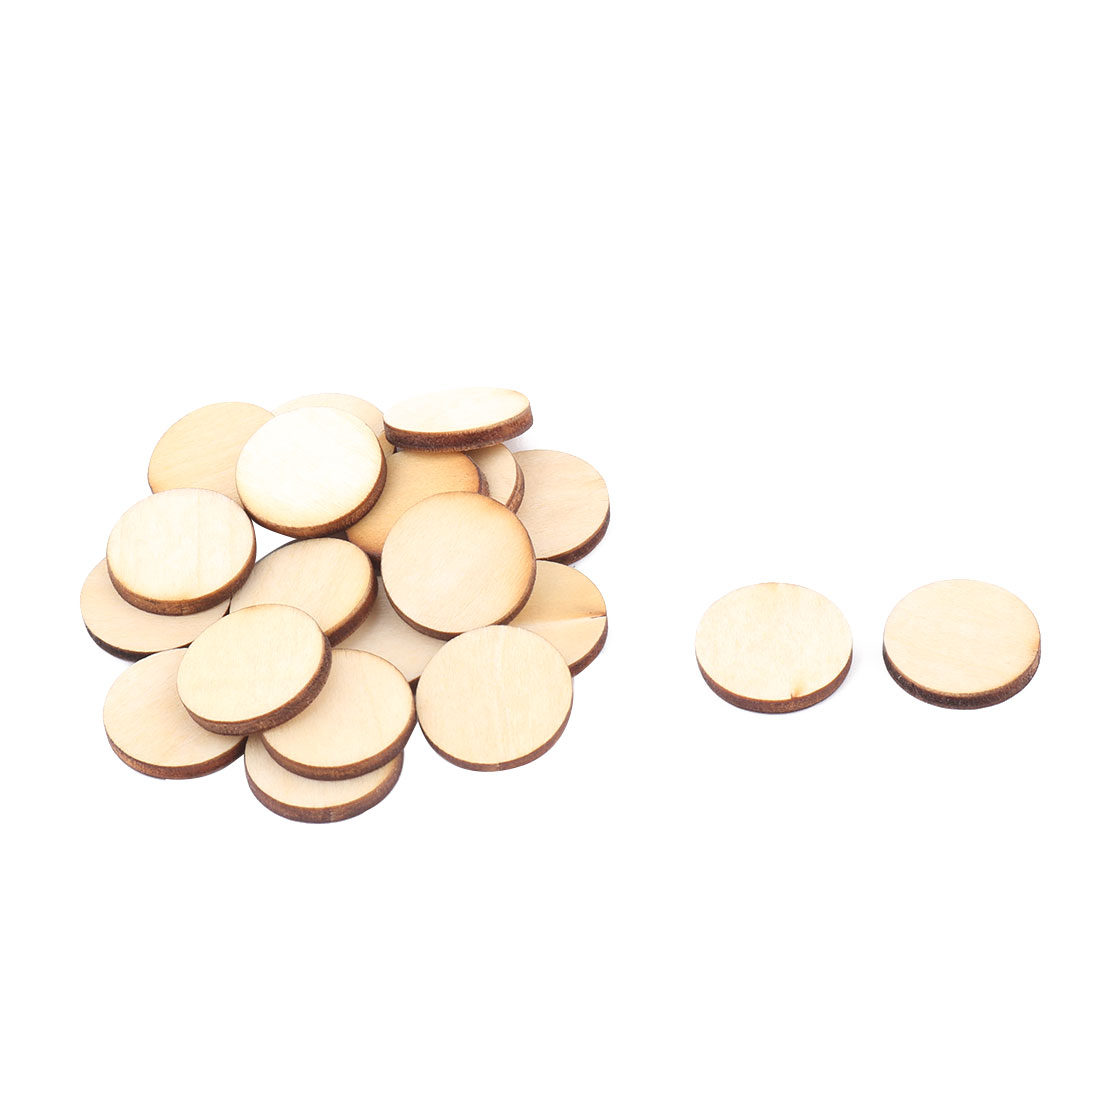 Wooden Slices Round Shape DIY Gift Craft Decor Accessories Embellishment Beige 20mm Dia 20pcs